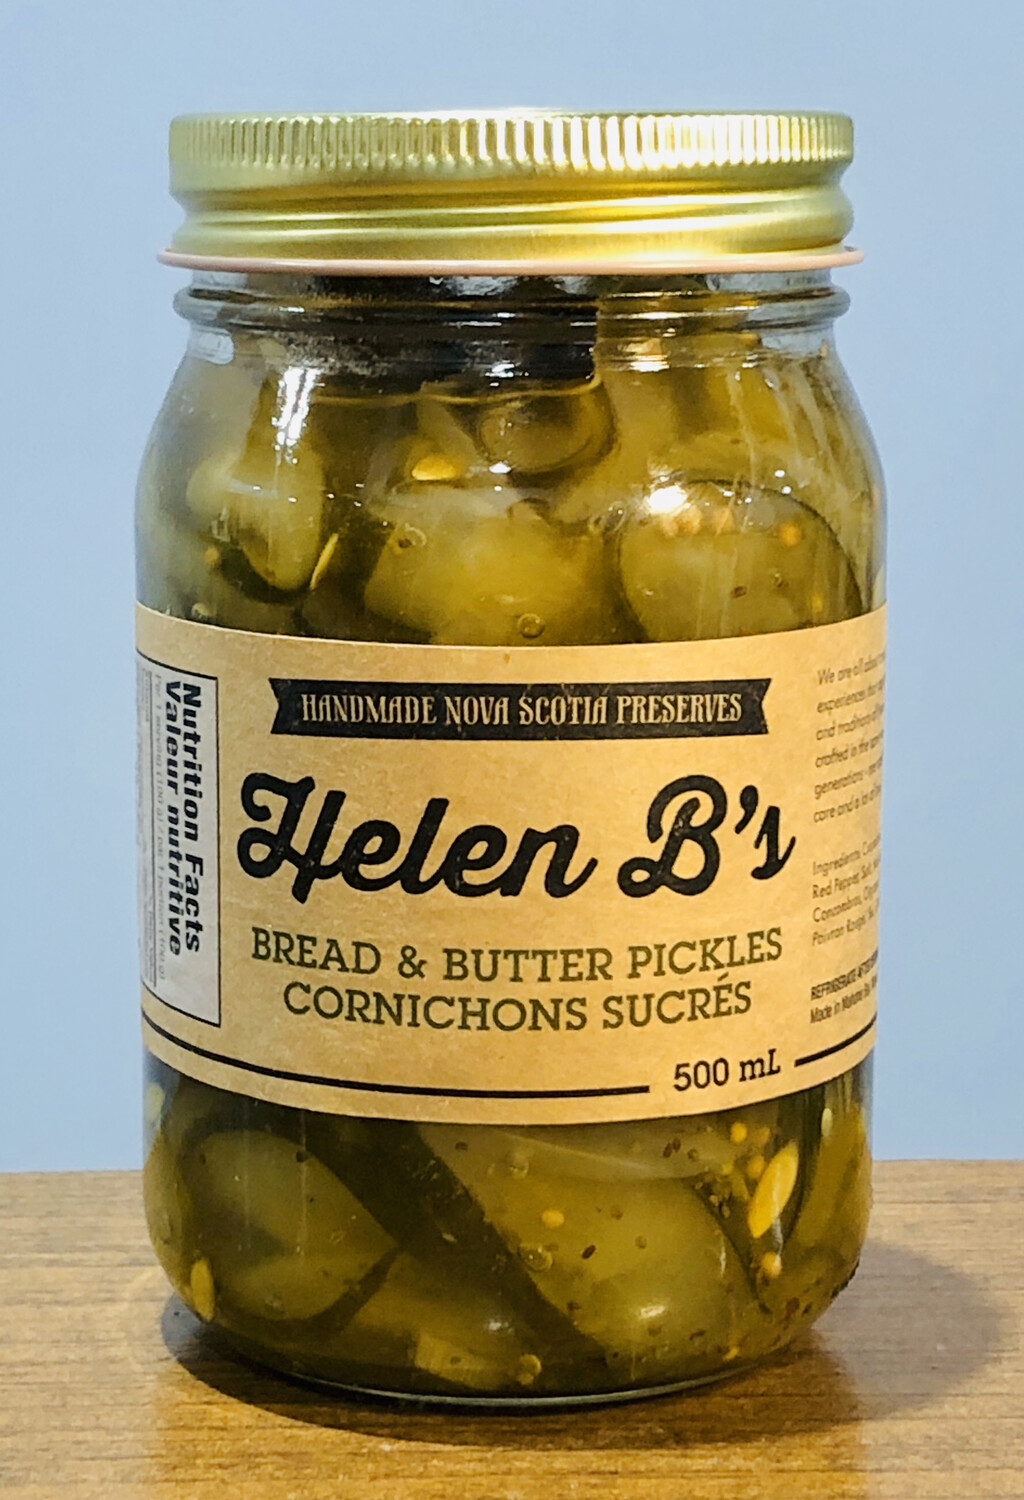 Helen B's Bread & Butter Pickles